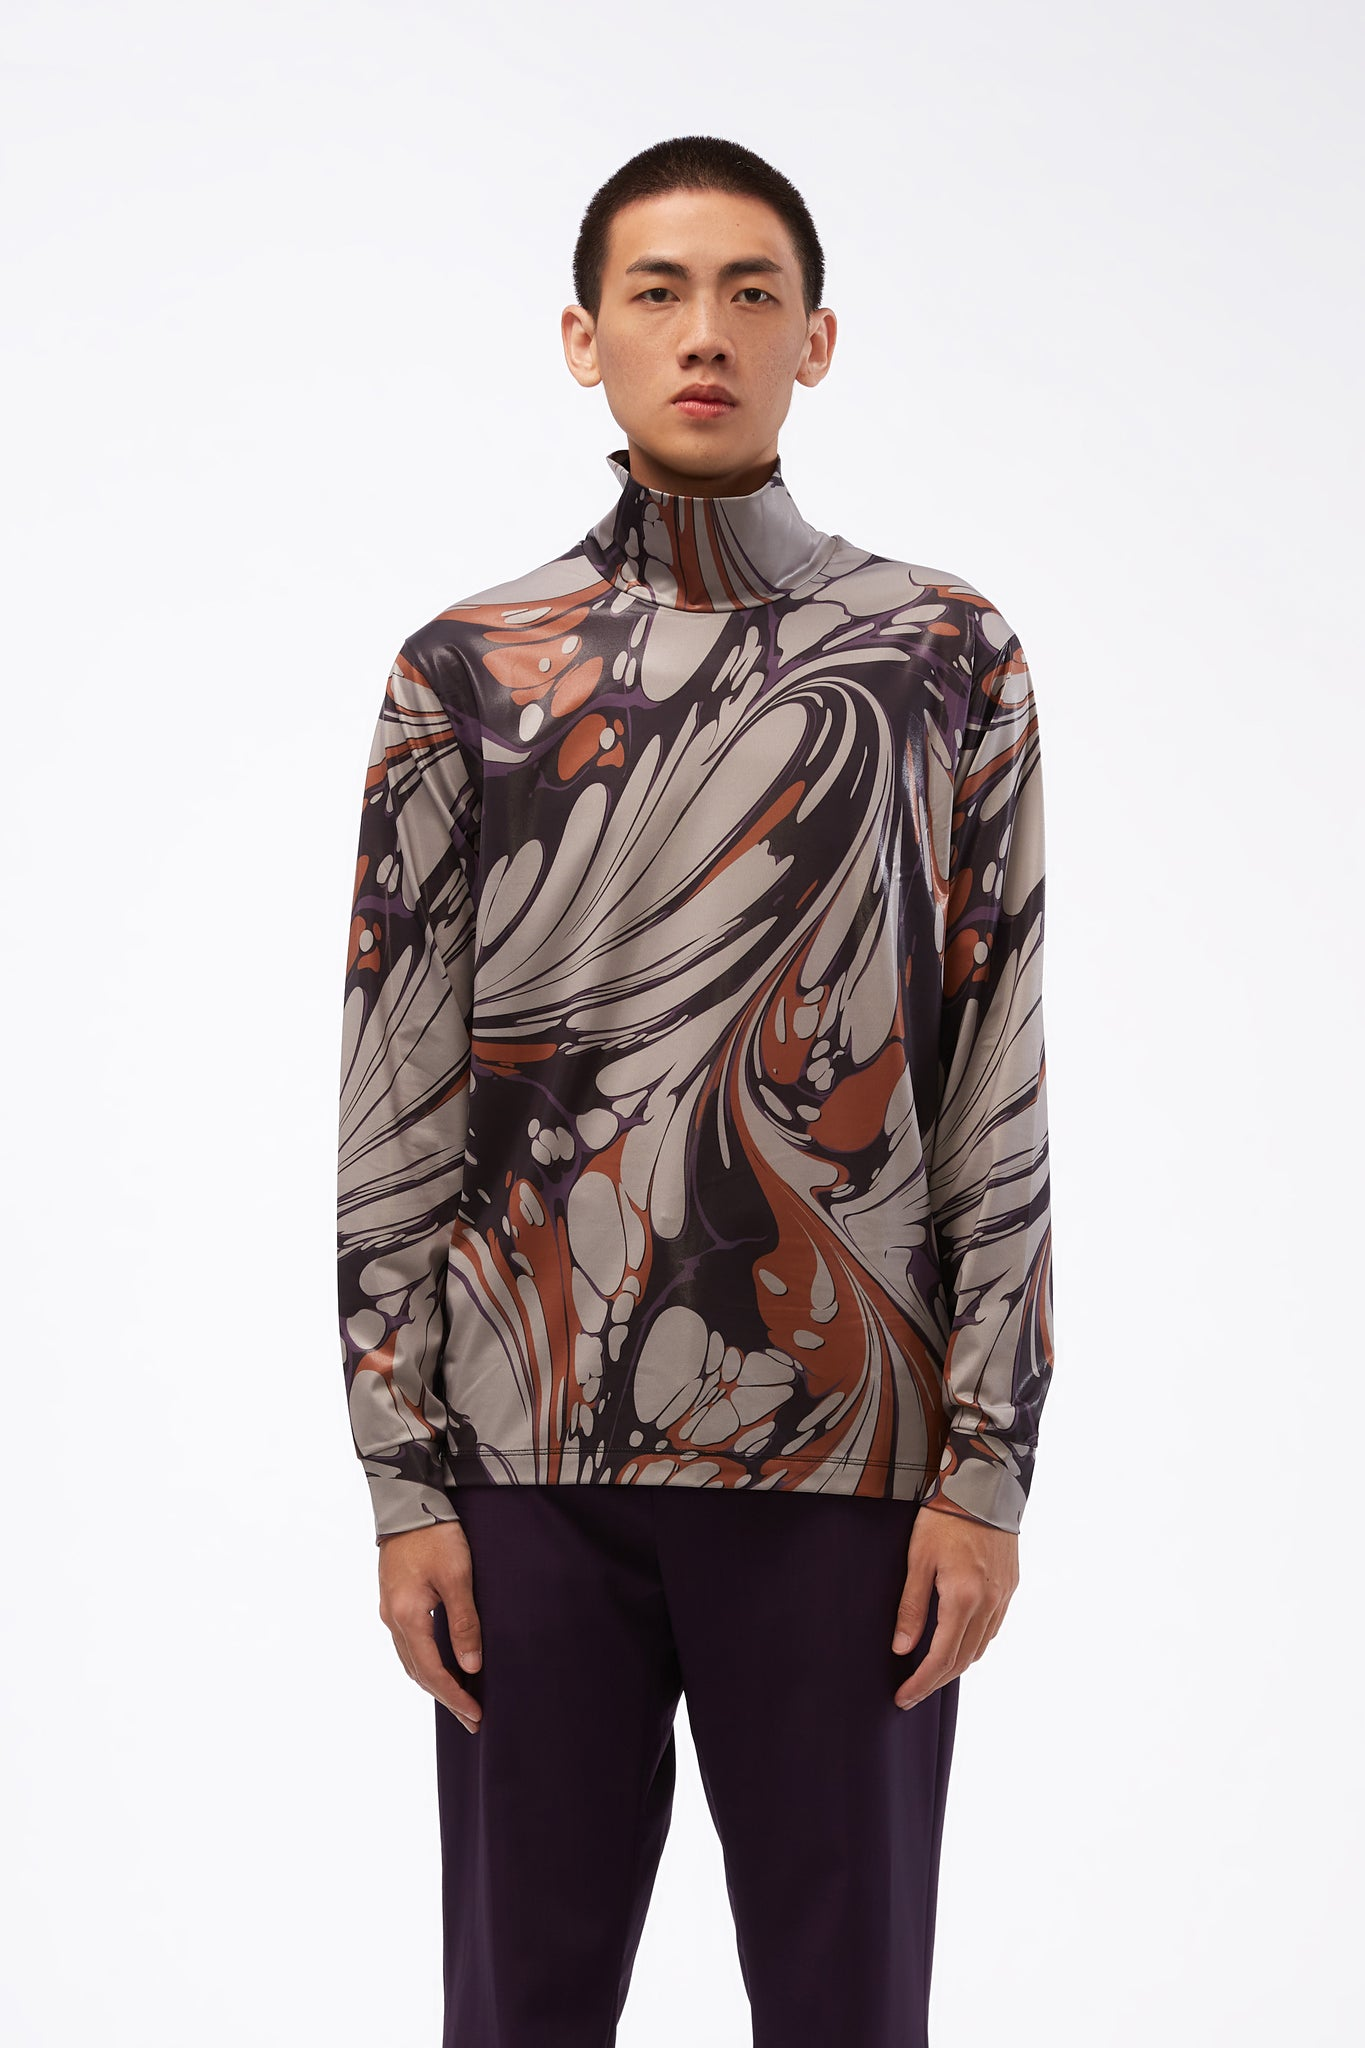 LS Turtle Neck Top Purple Marble Print Jersey